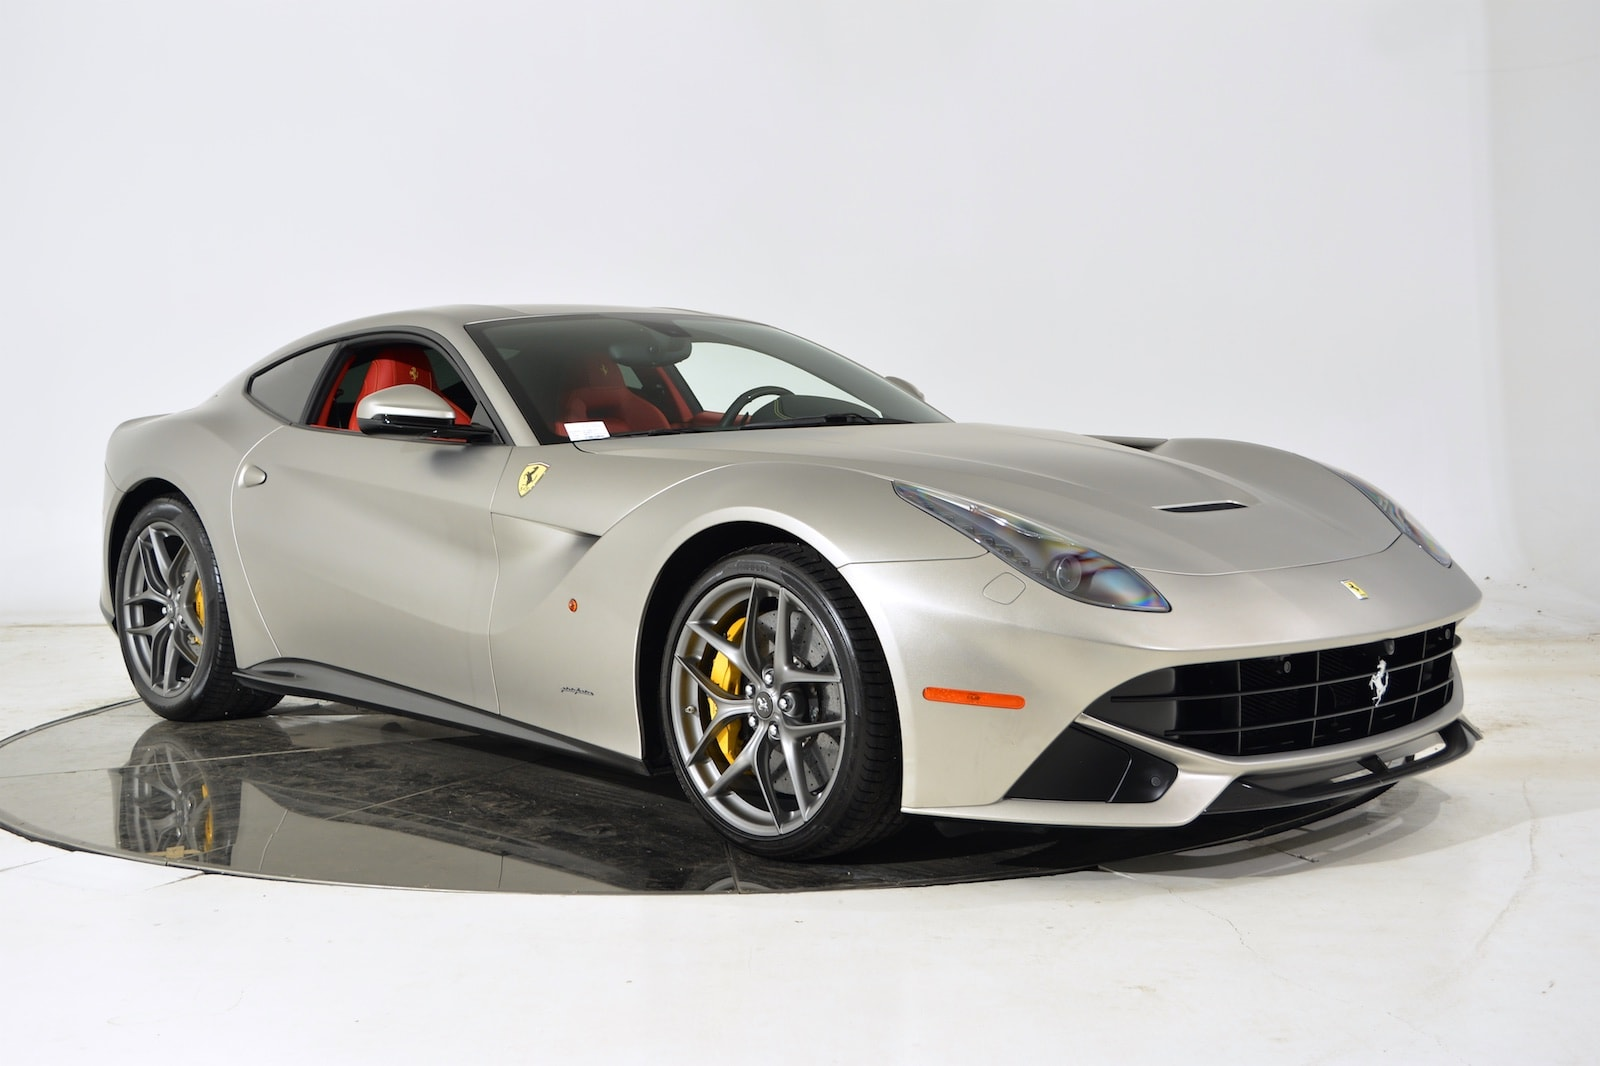 coupe for sale in fort lauderdale fl at ferrari of fort lauderdale. Cars Review. Best American Auto & Cars Review